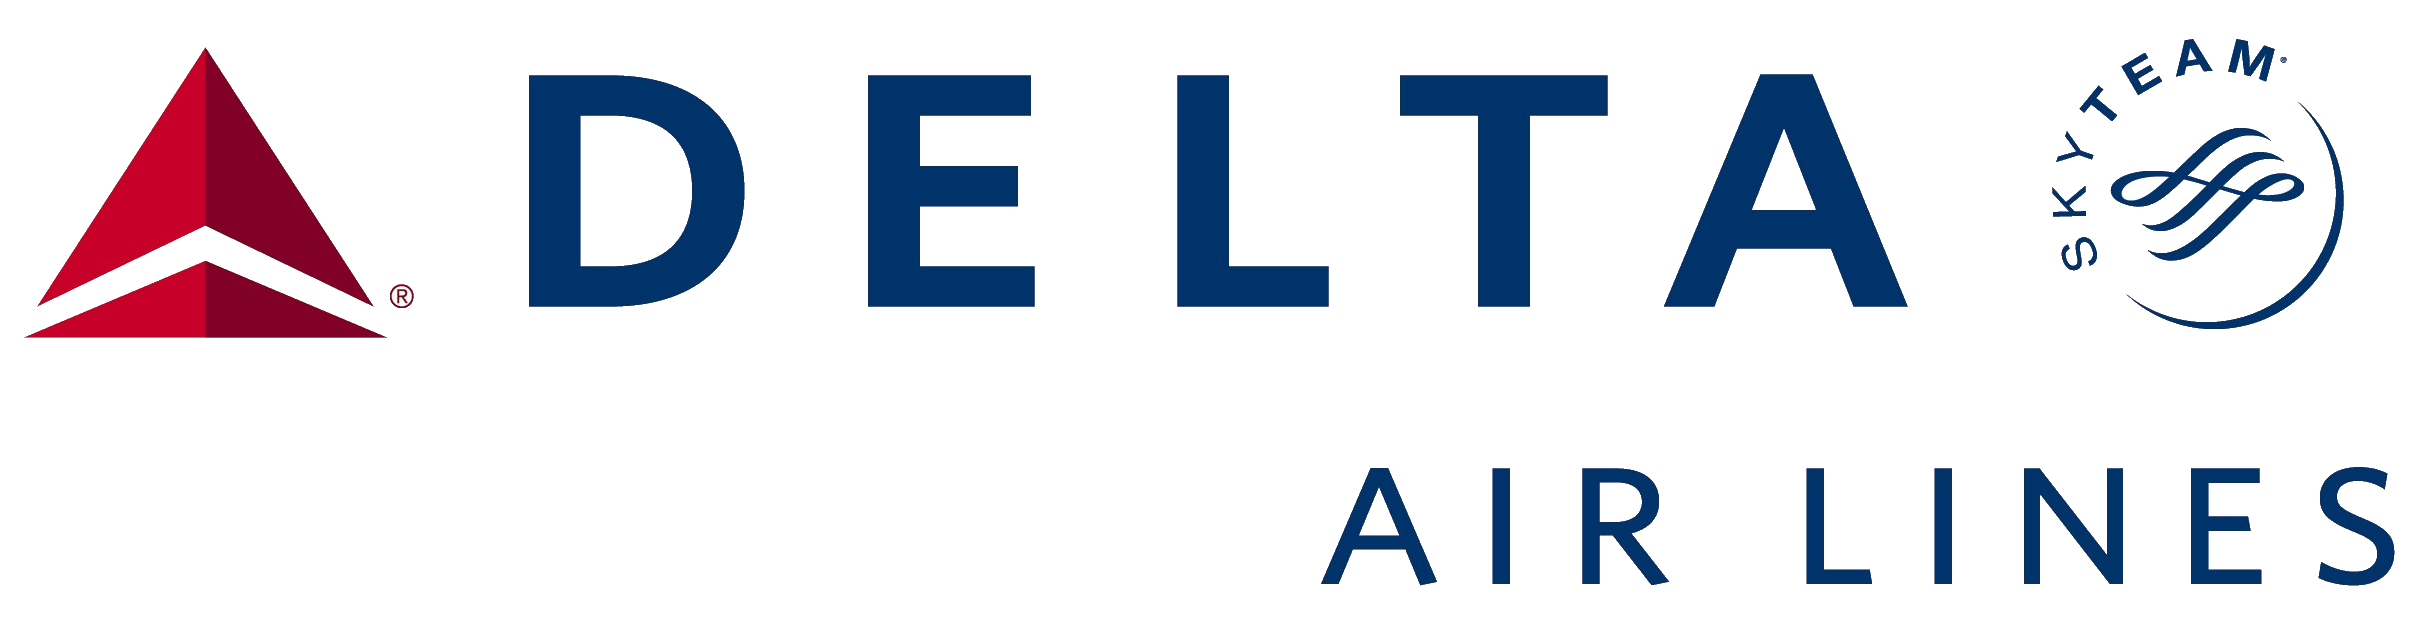 Delta logo png. Airlines missoula international airport